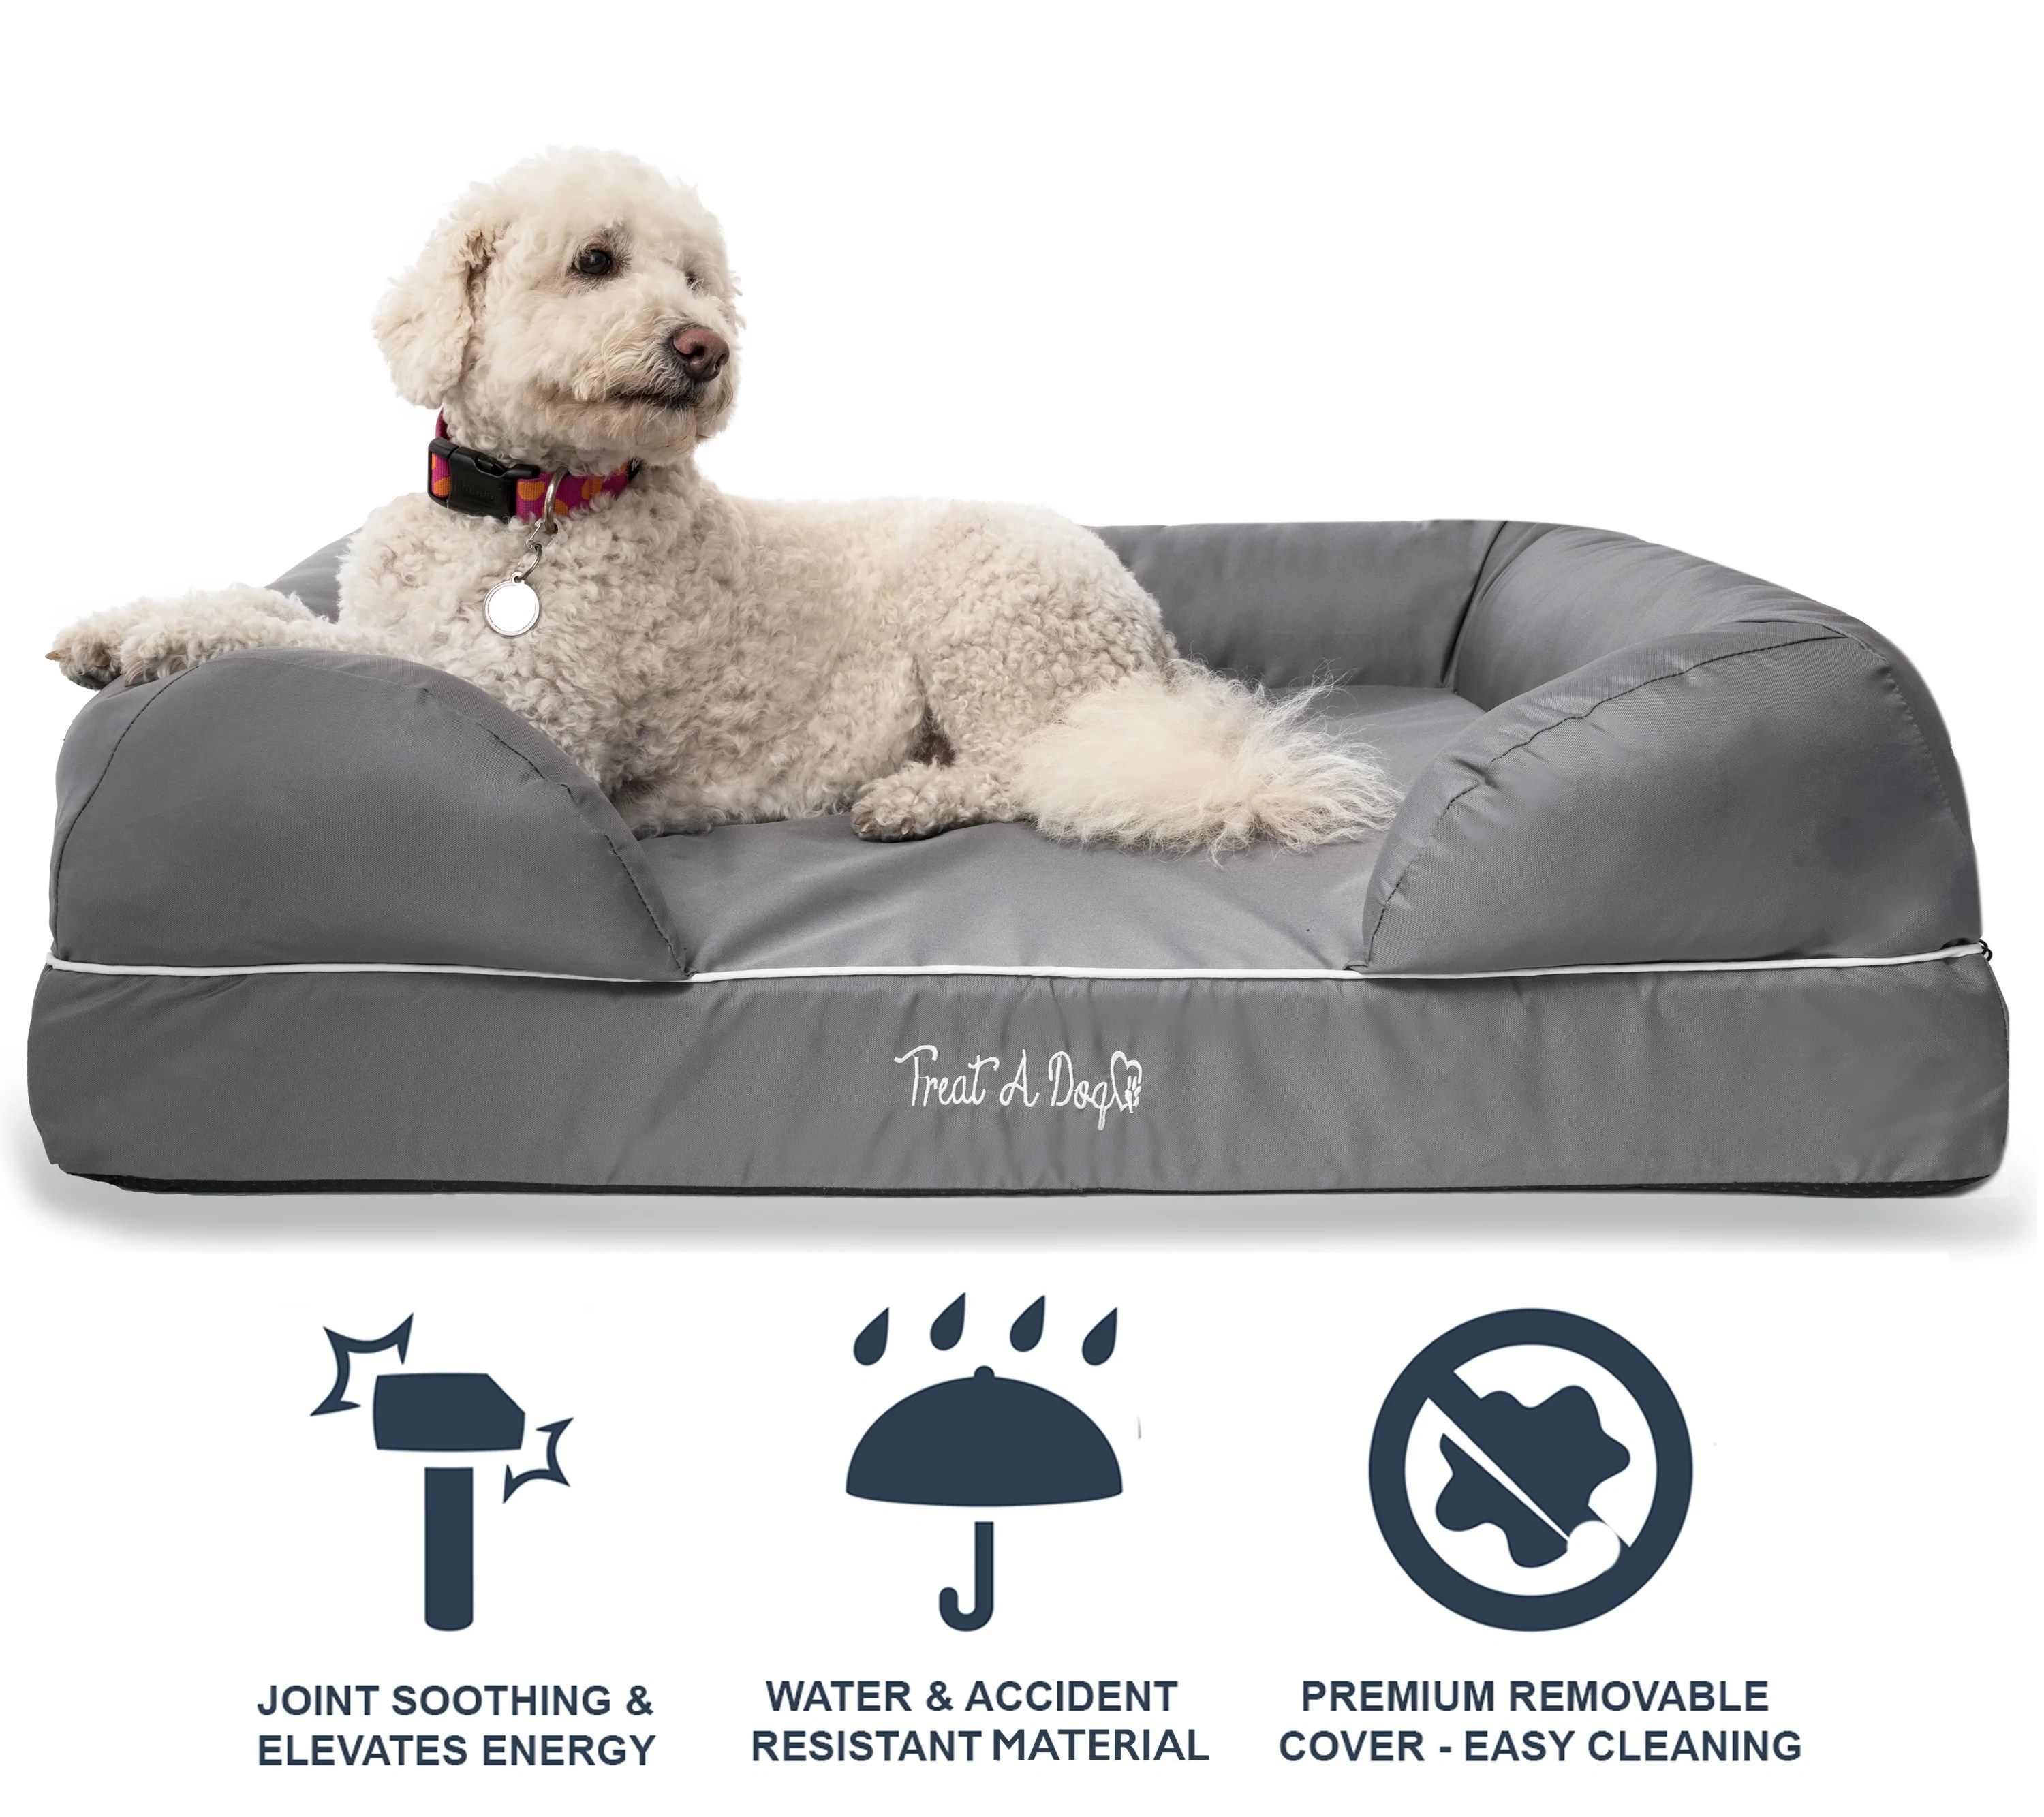 Dog Beds Pet Puplounge Memory Foam Dog Bed